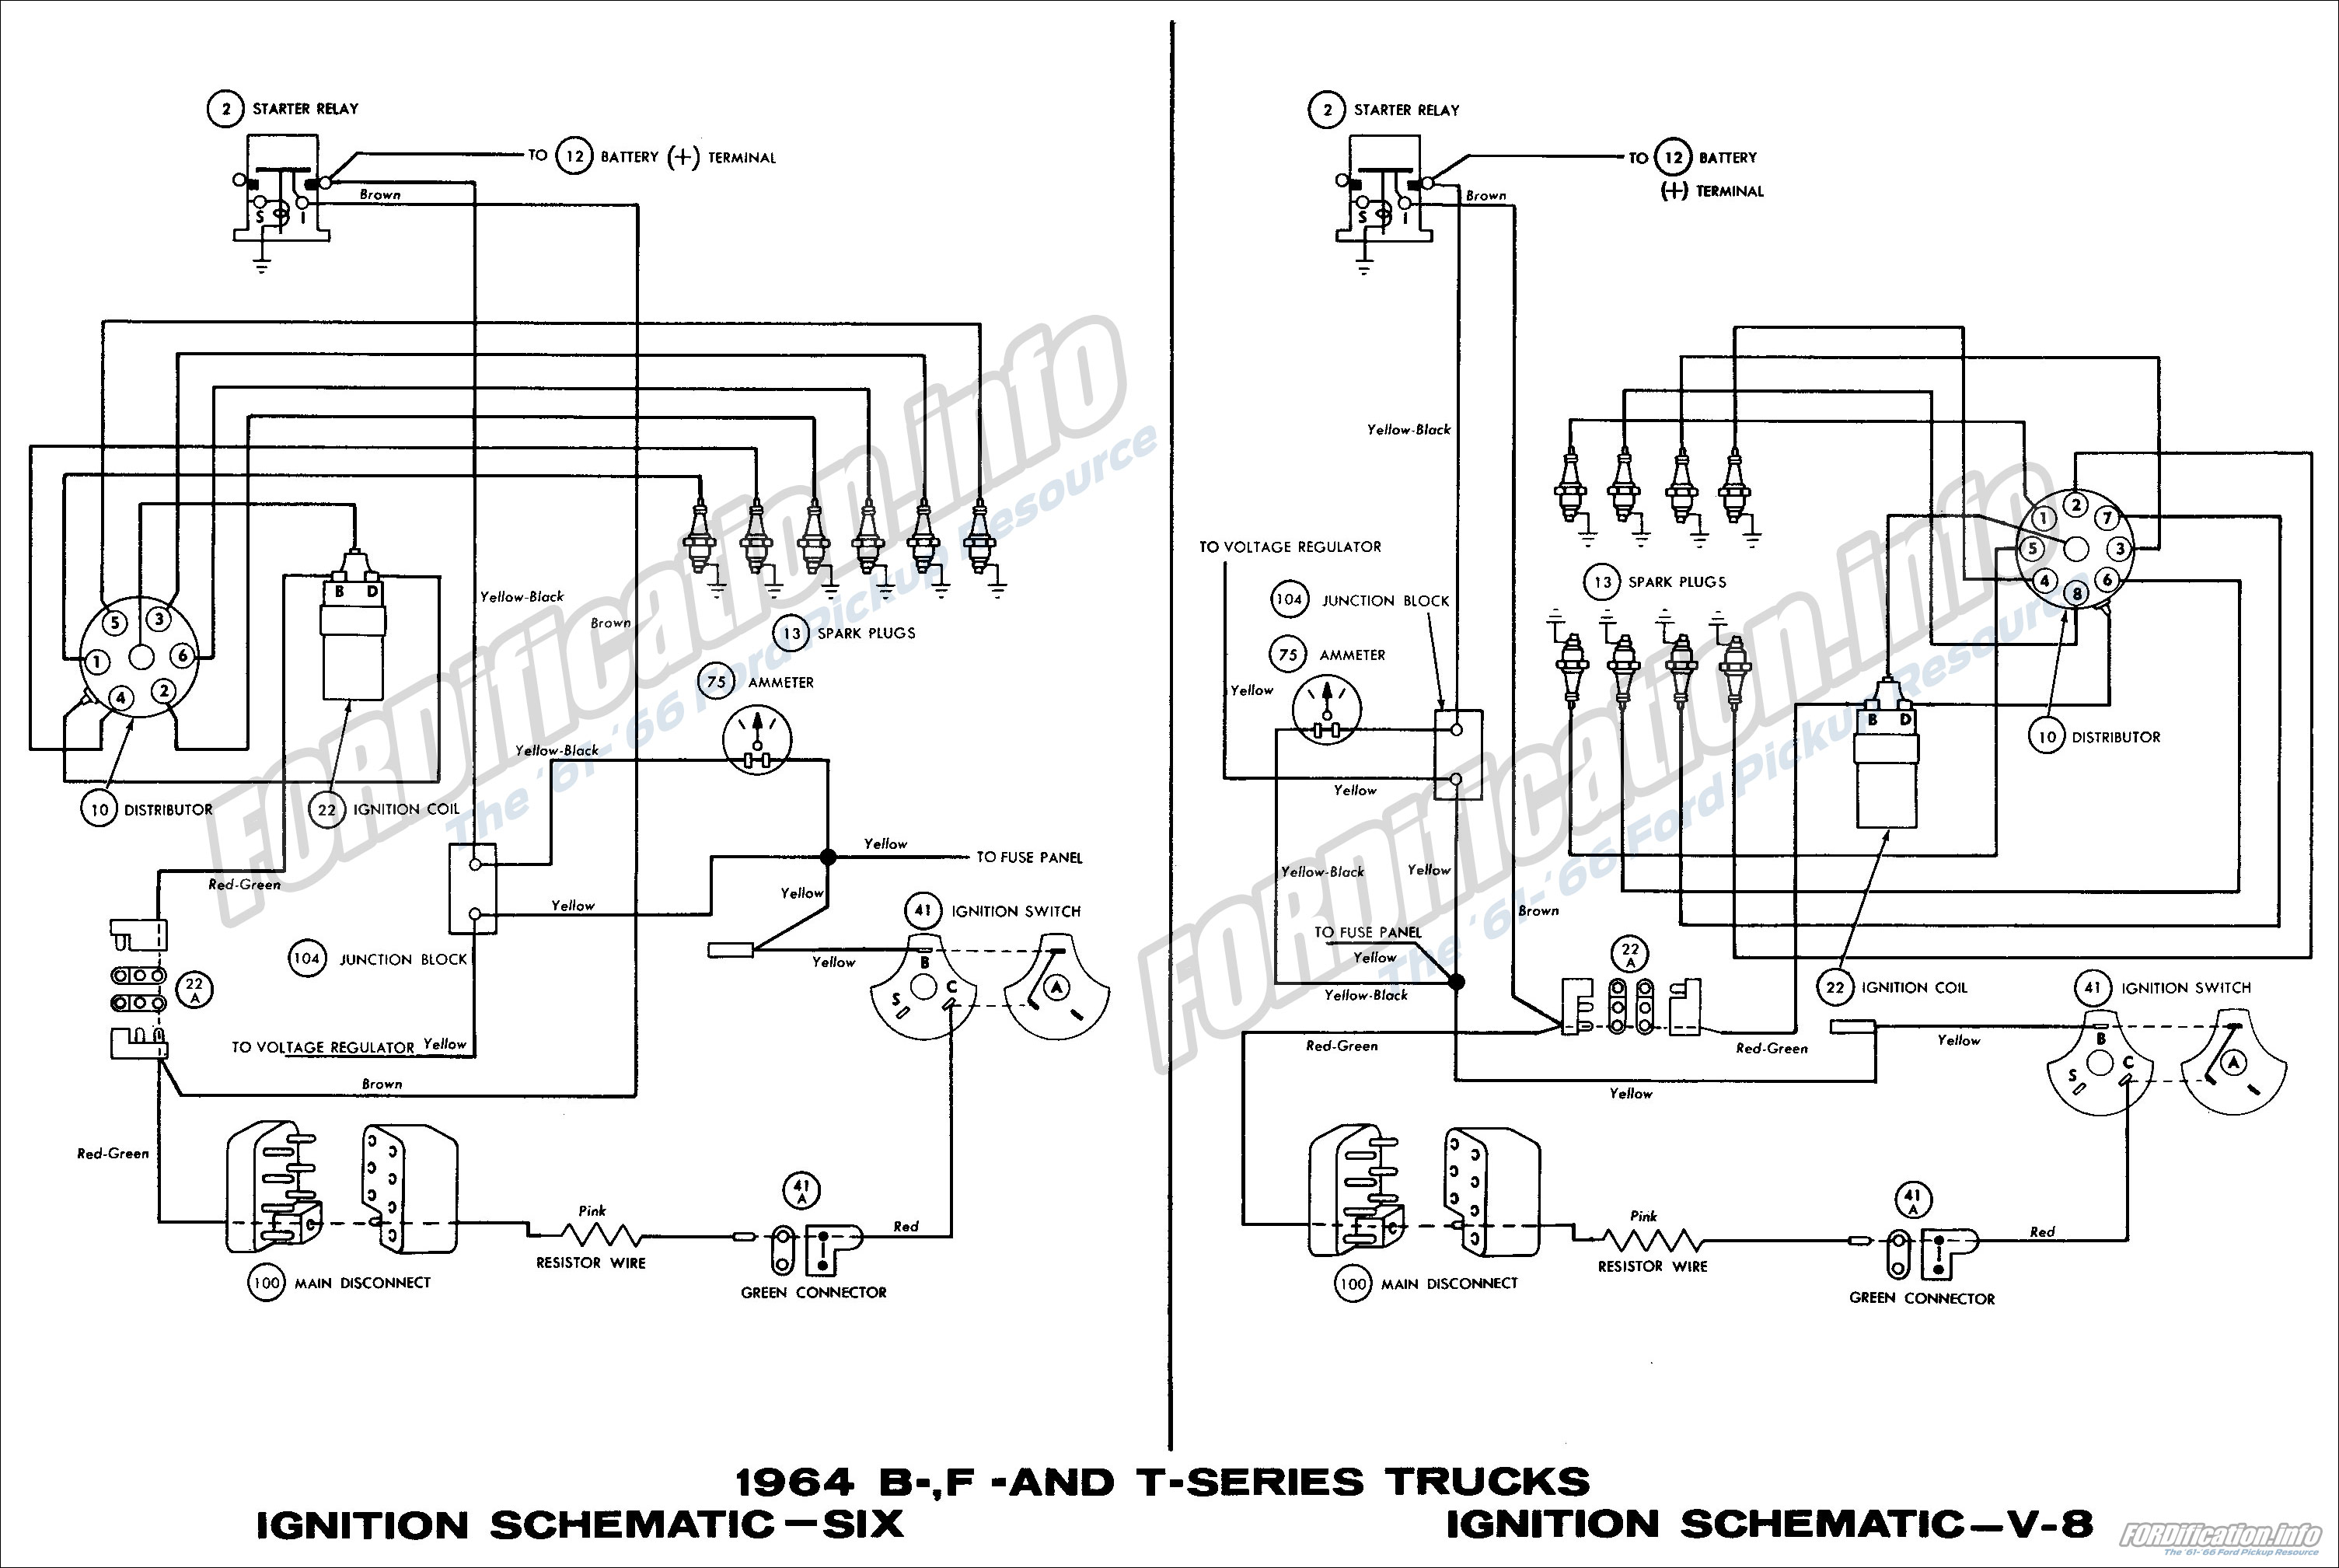 1964 ford truck wiring diagrams fordification info the 61 66 1964 b f and t series trucks ignition schematics six and v8